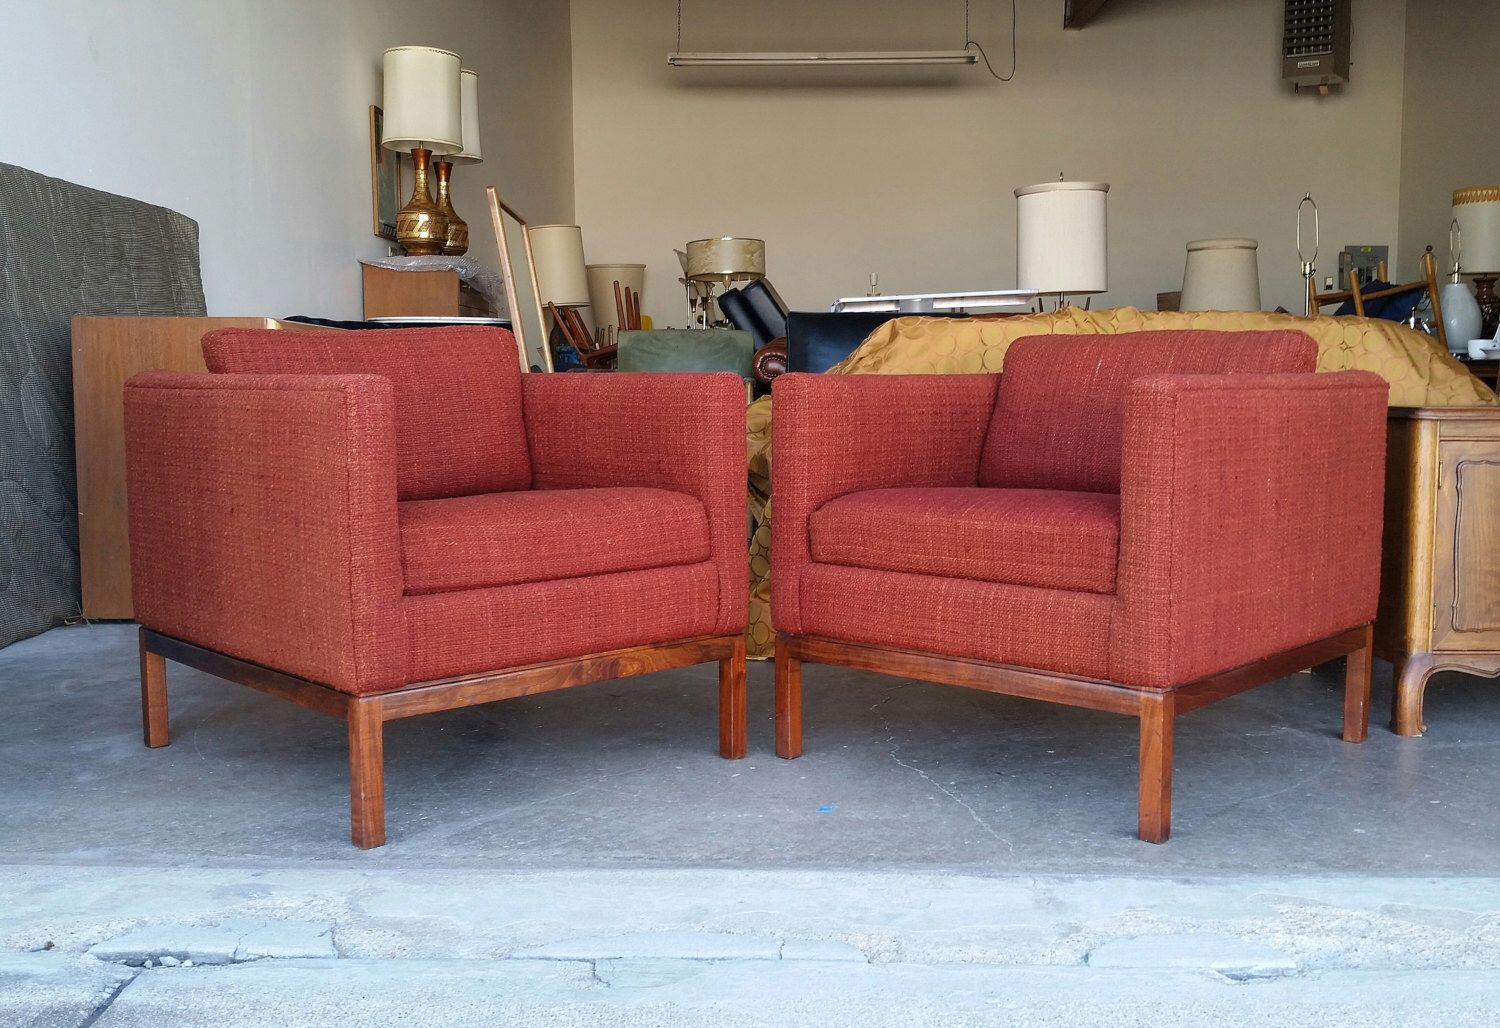 Pair Vintage 1960u0027s Club Chairs Mid Century Modern Florence Knoll Style  Original Upholstery Oiled Walnut Base